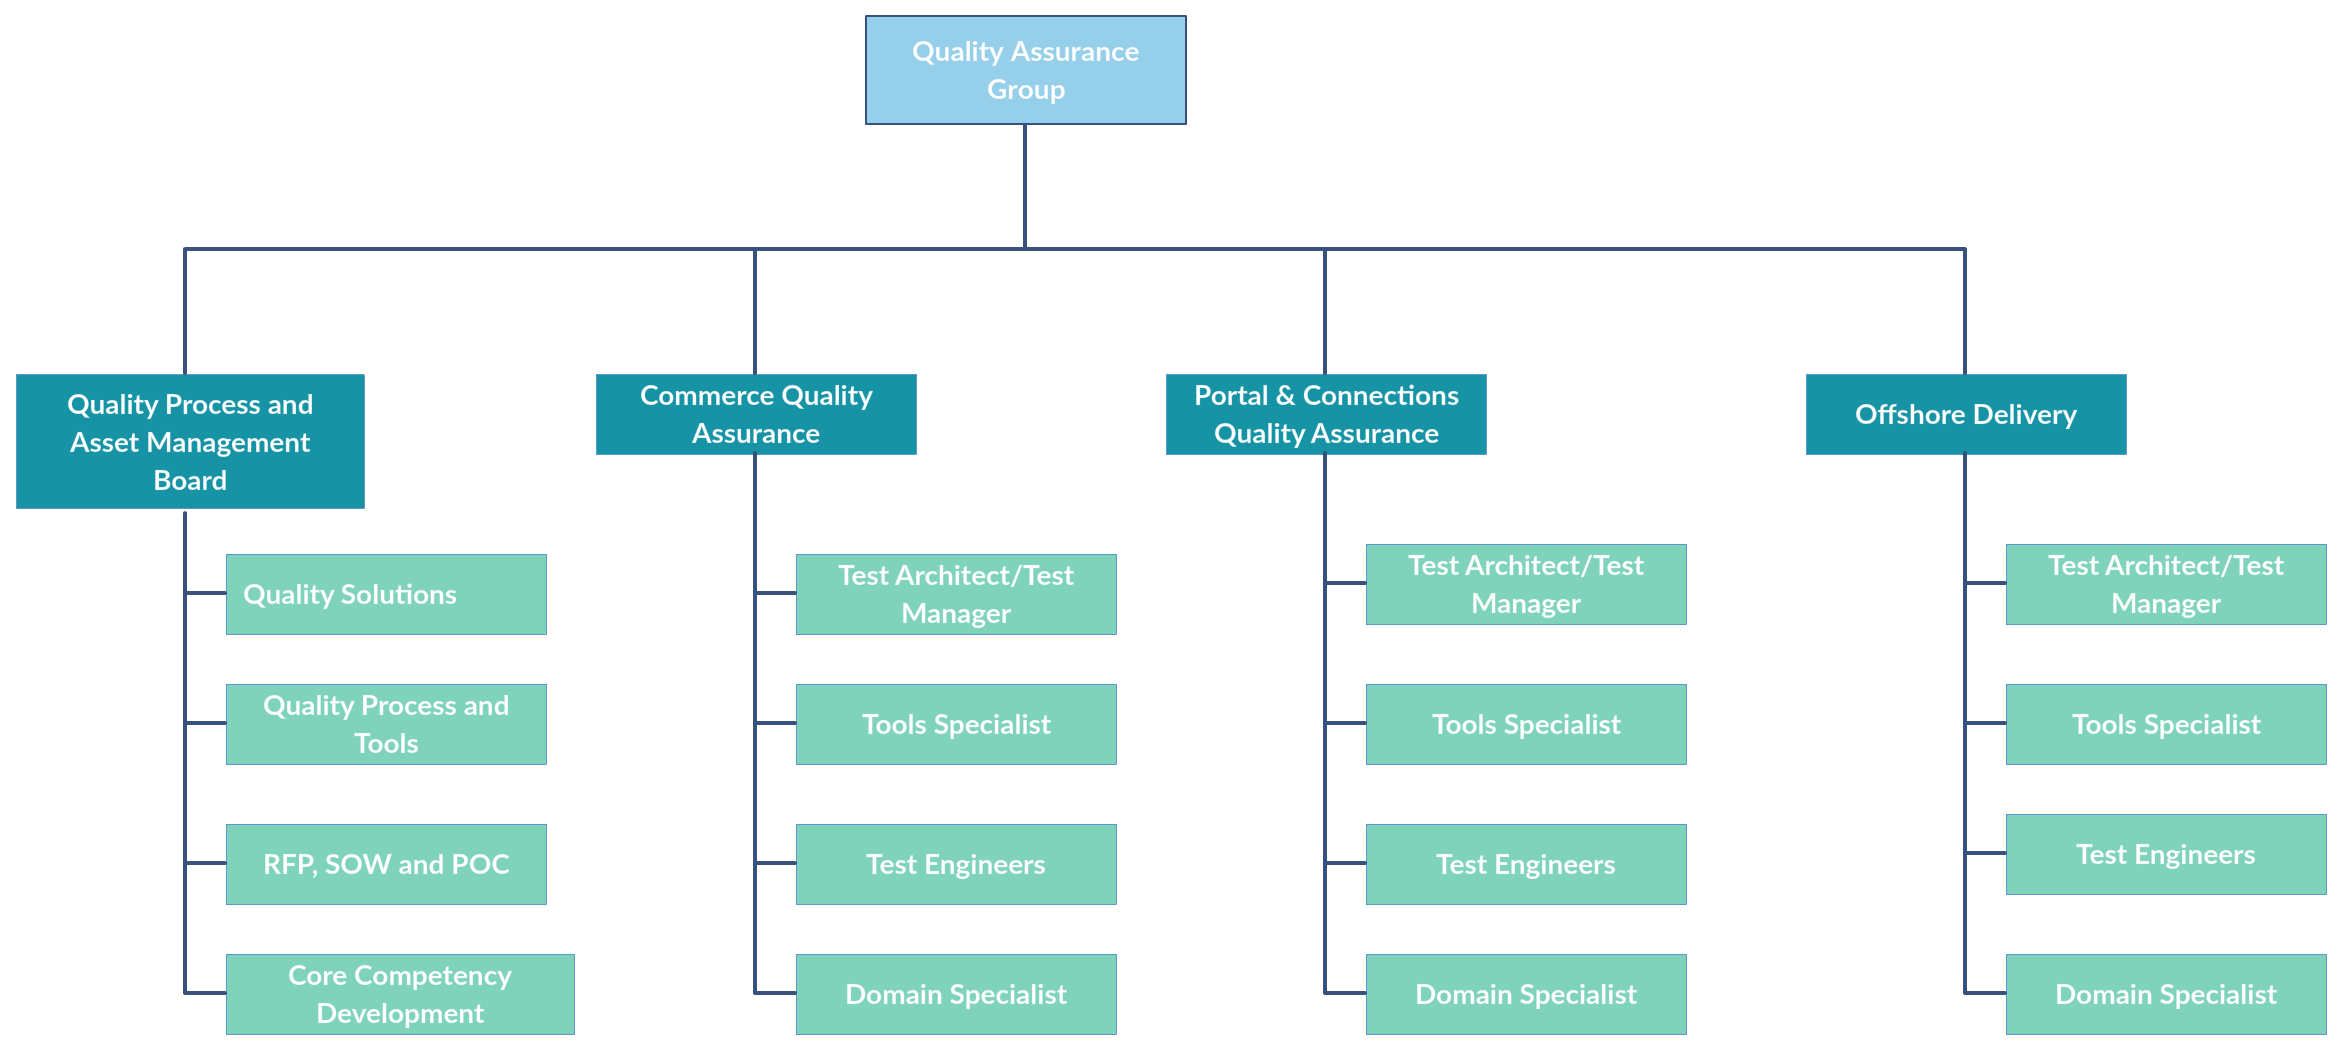 In This Org Chart Template, It Illustrates A Dedicated Group For Quality Assurance In An